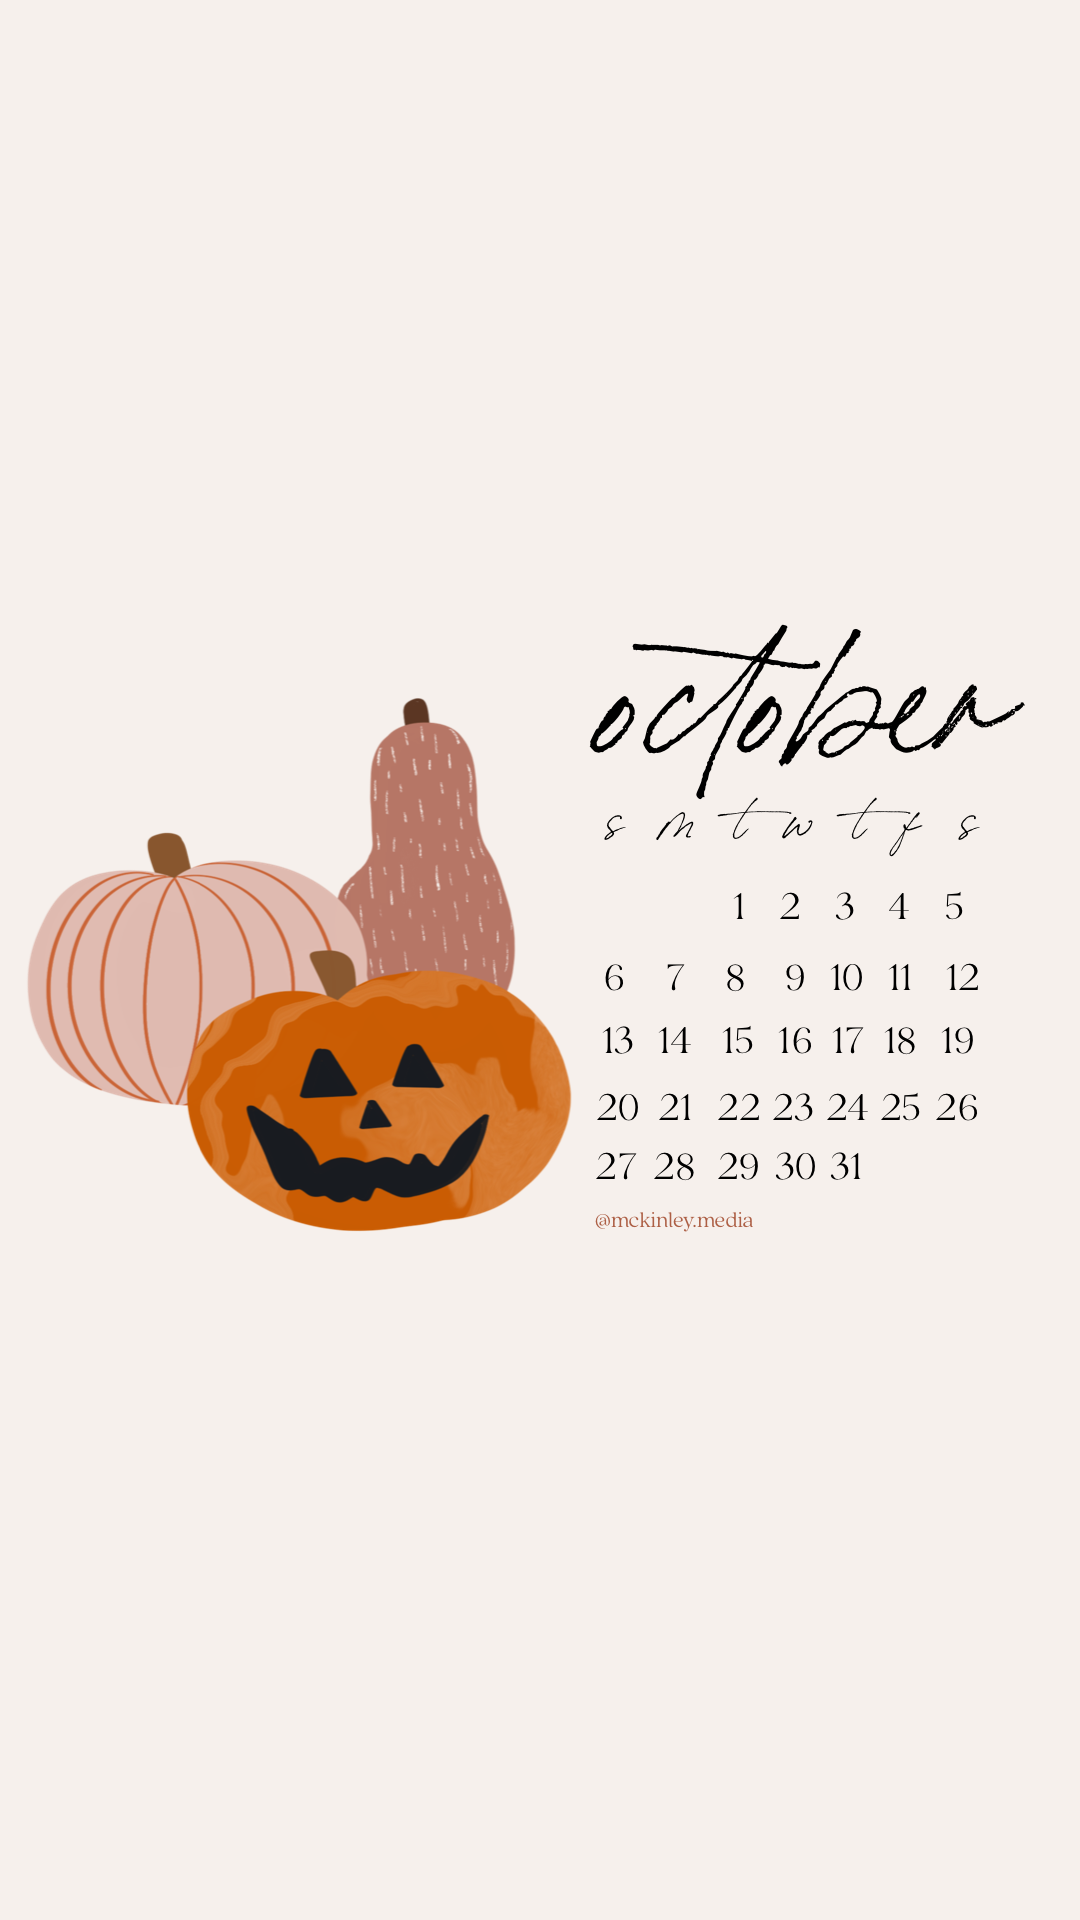 October, October calendar 2019, iPhone calendar, iPhone